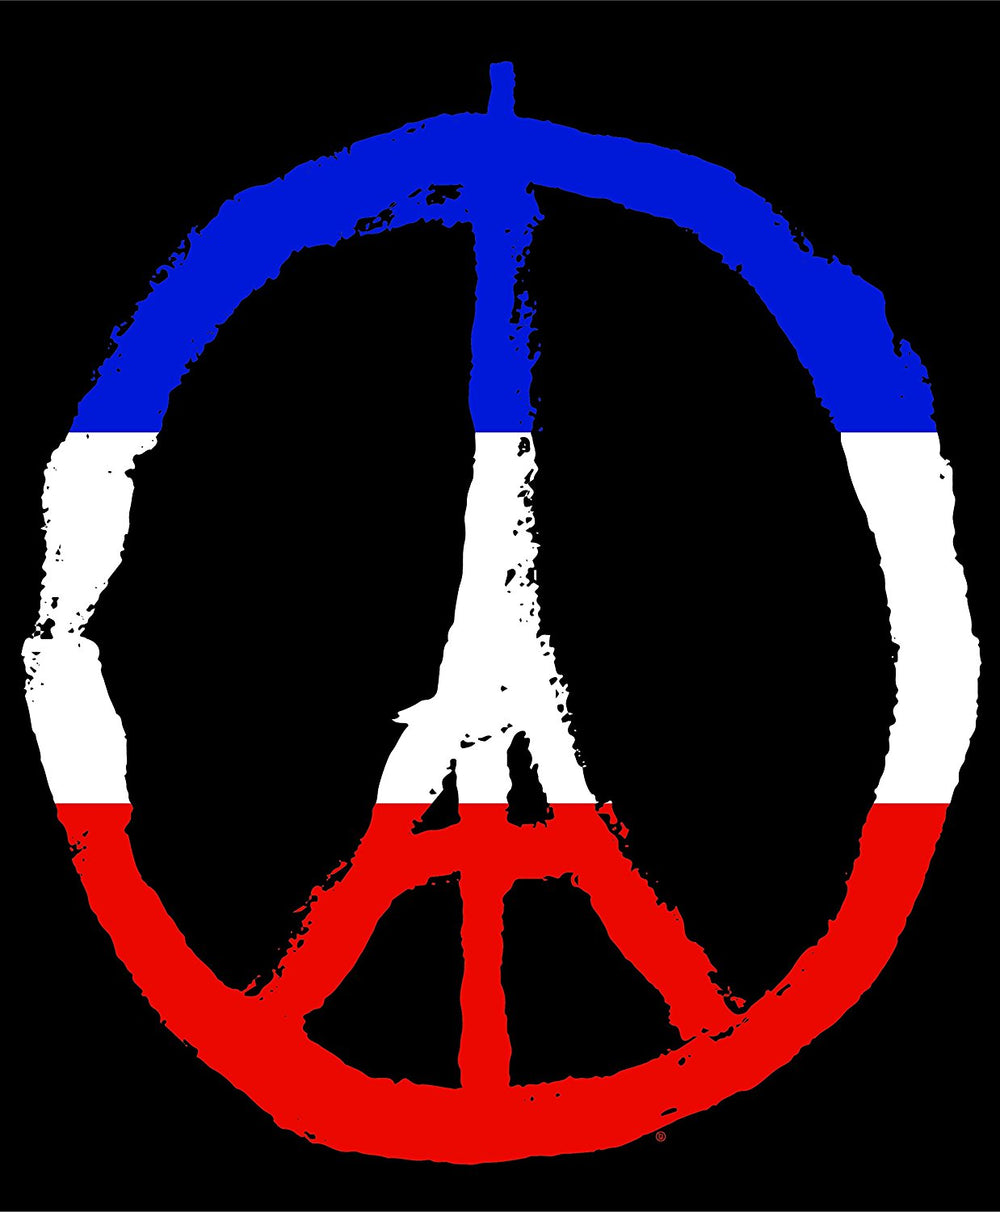 Eiffel Tower Peace Symbol Commemorative Solidarity